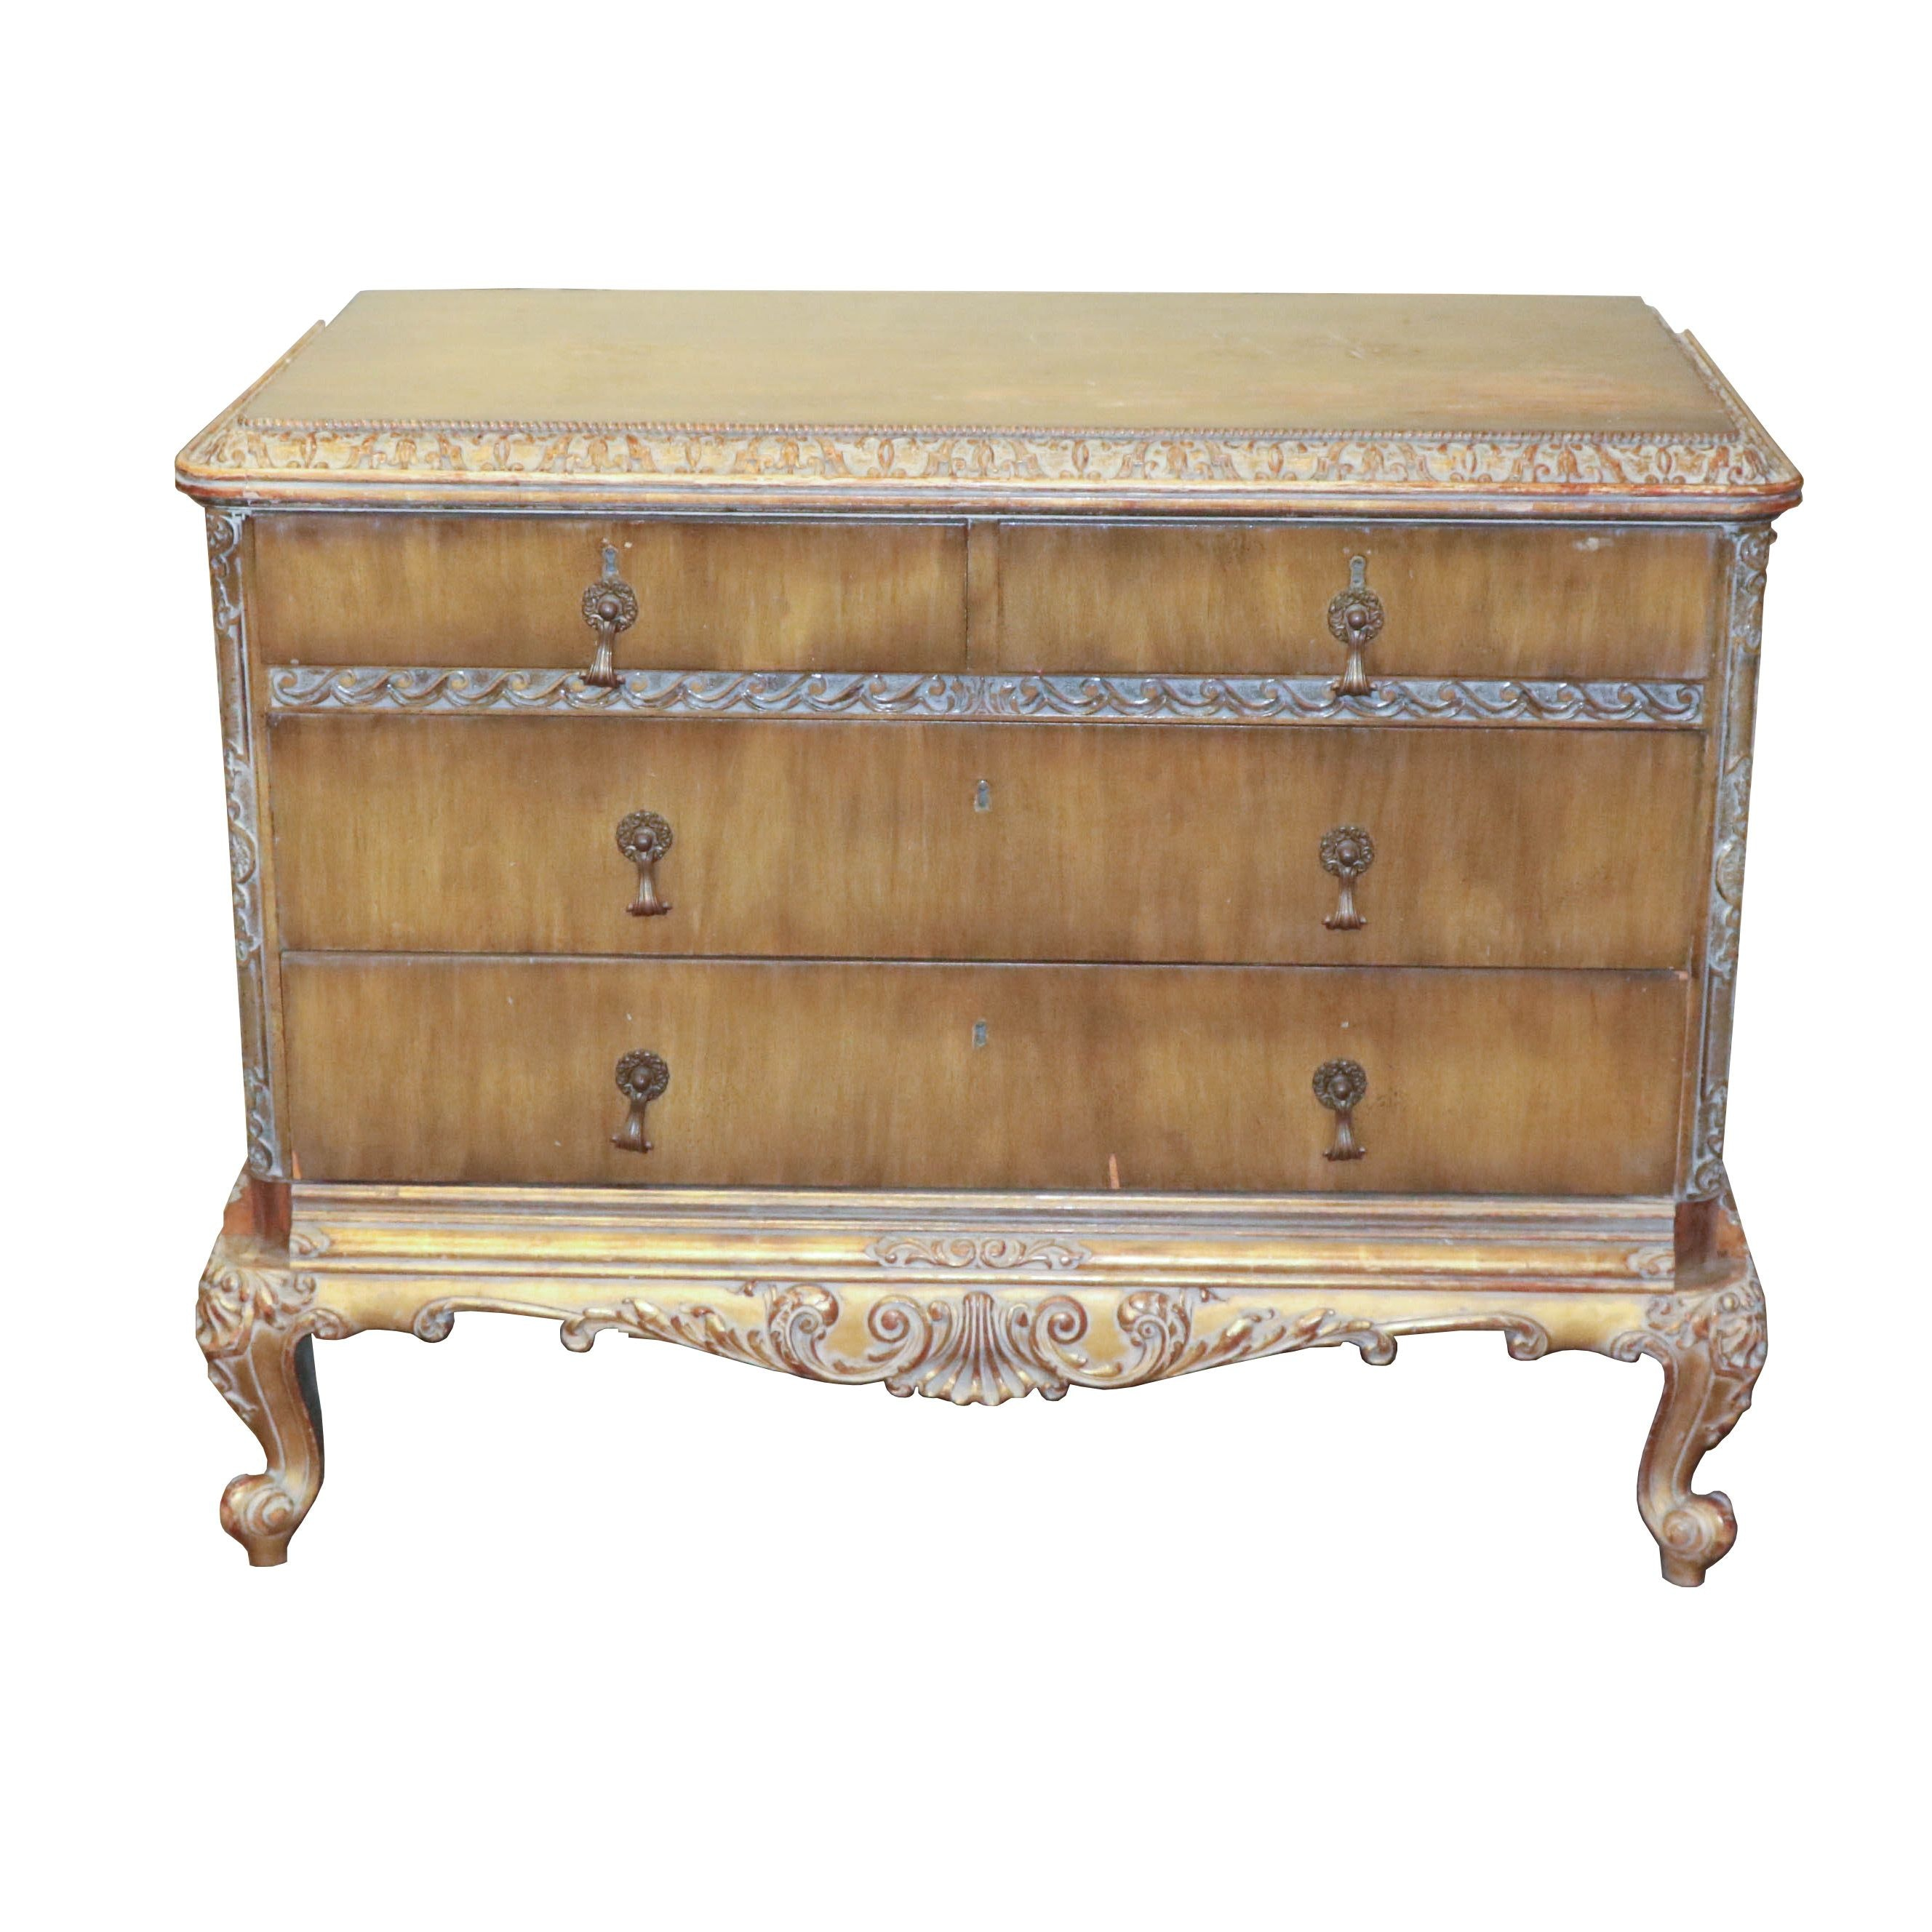 French Provincial Style Chest of Drawers, Mid 20th Century